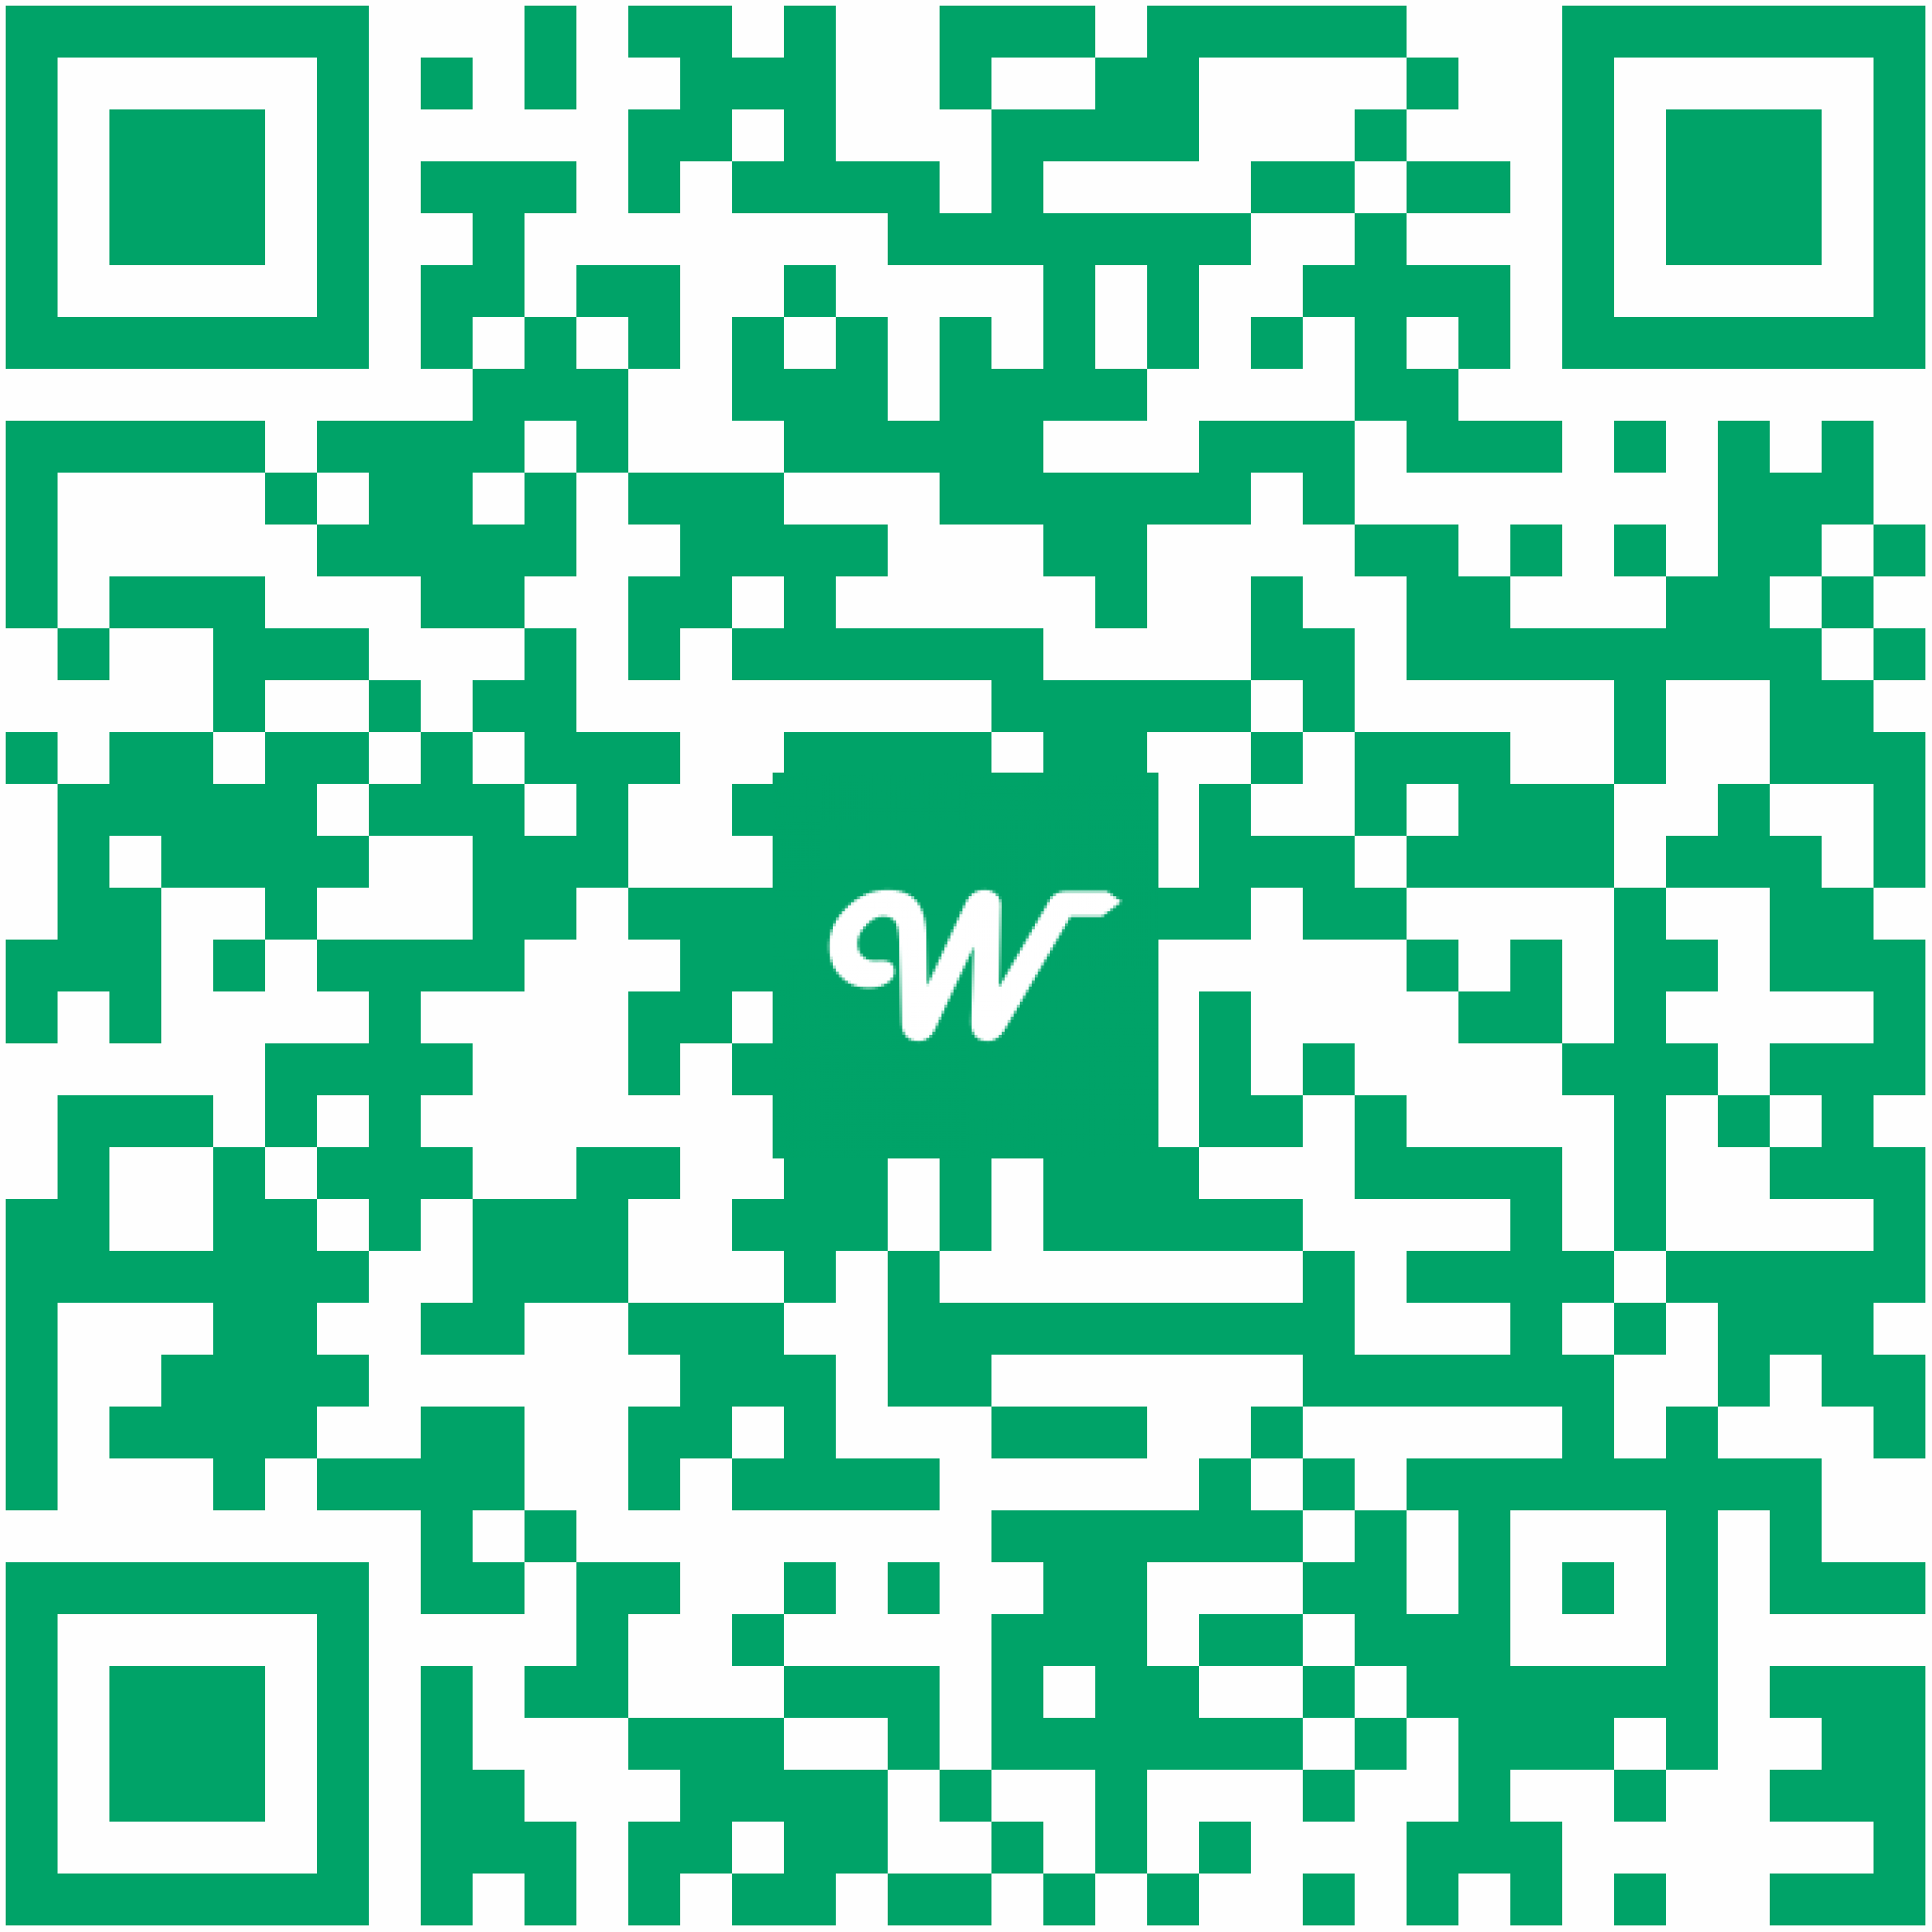 Printable QR code for 6002 Professional Pkwy #140